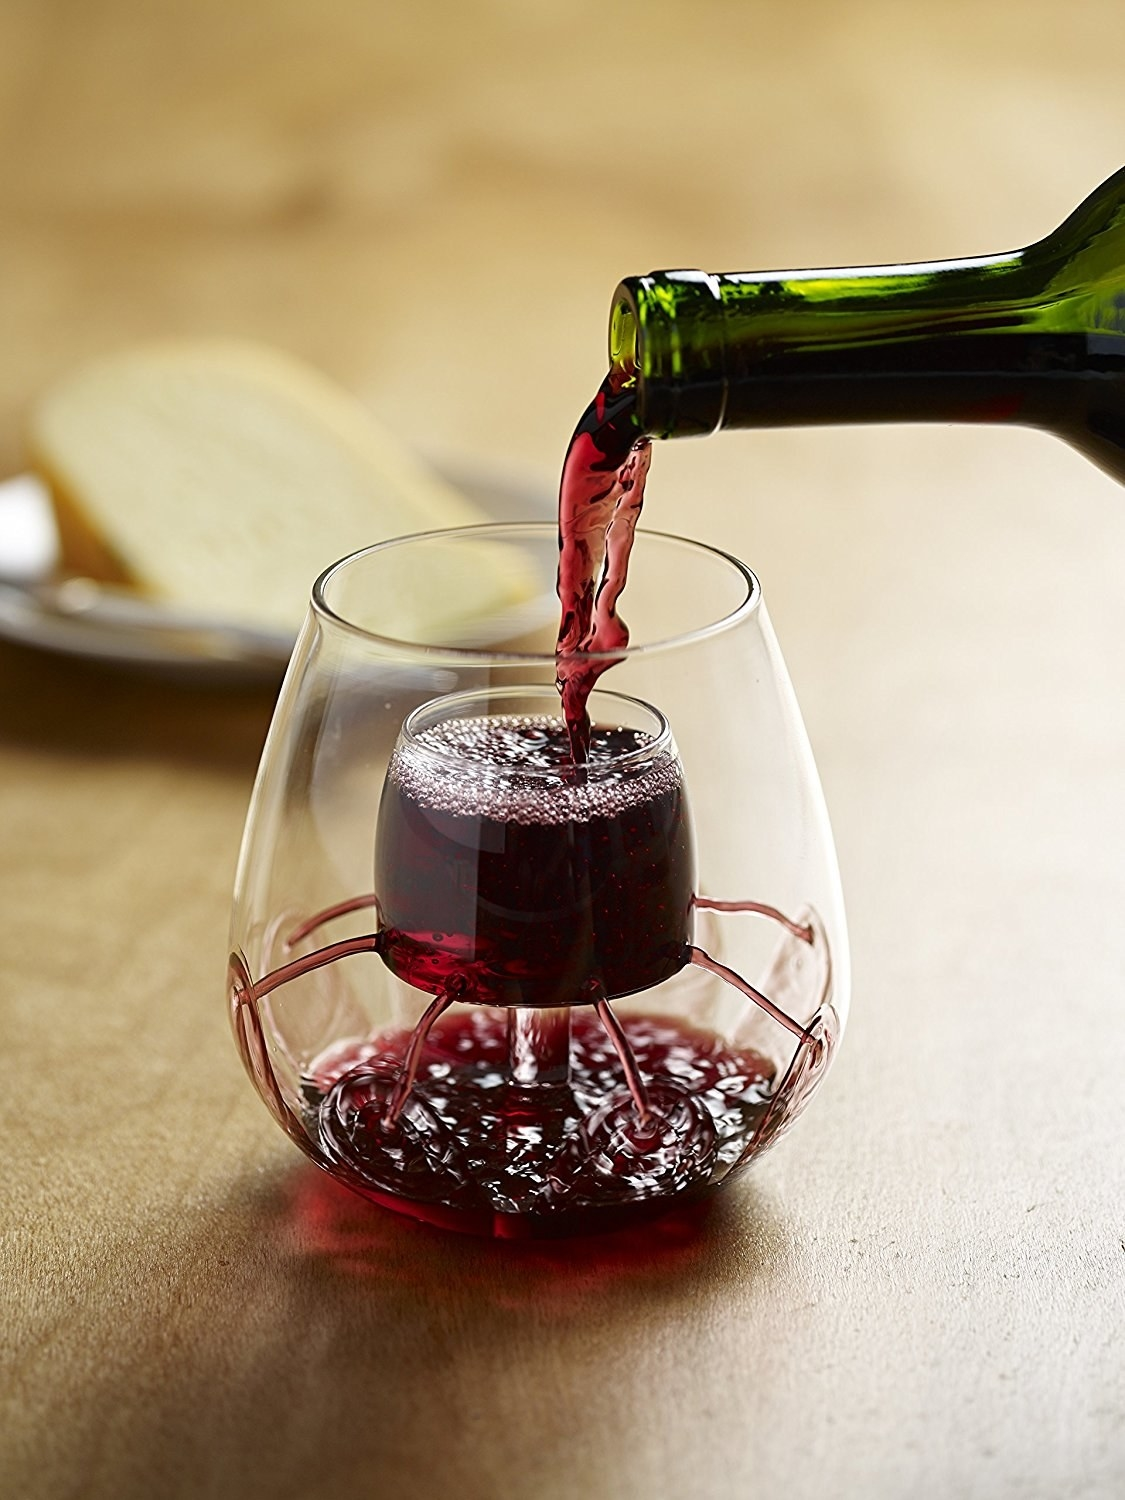 Aerating wine glasses with red wine in them